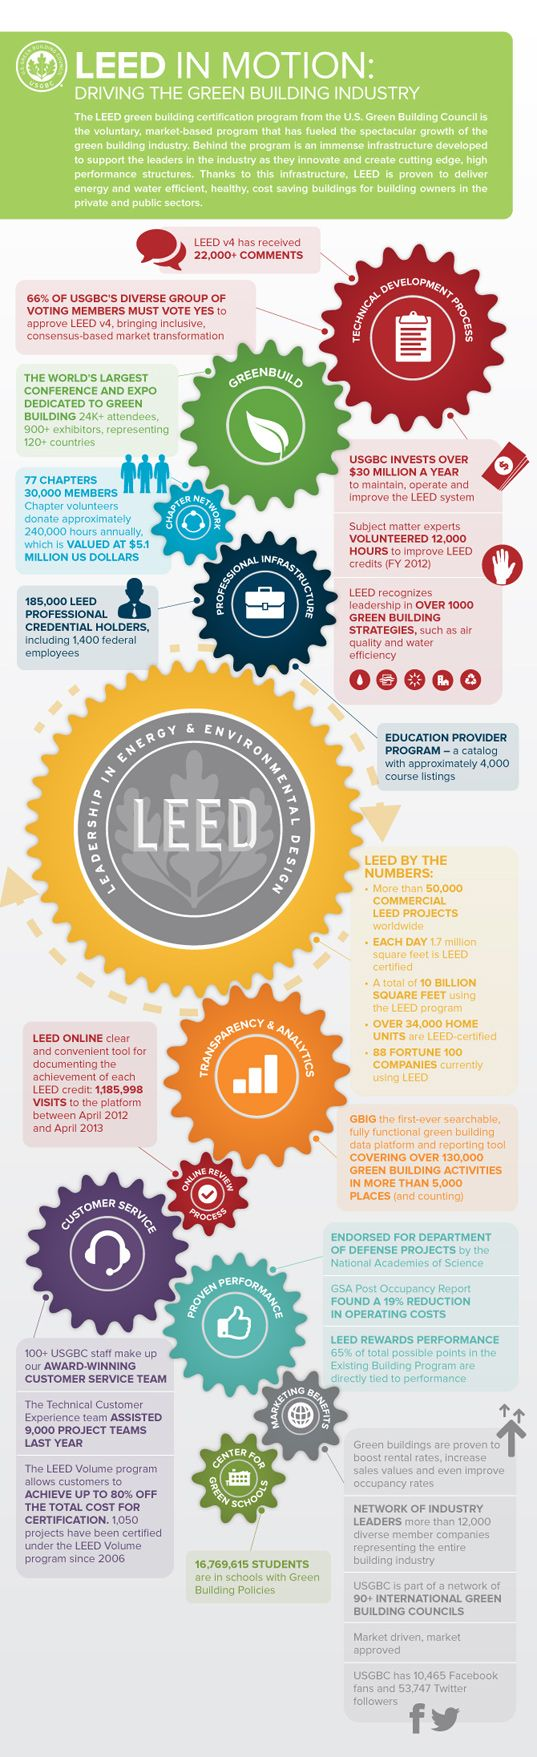 39 Leed In Motion 39 Infographic Shows How Leed Certification